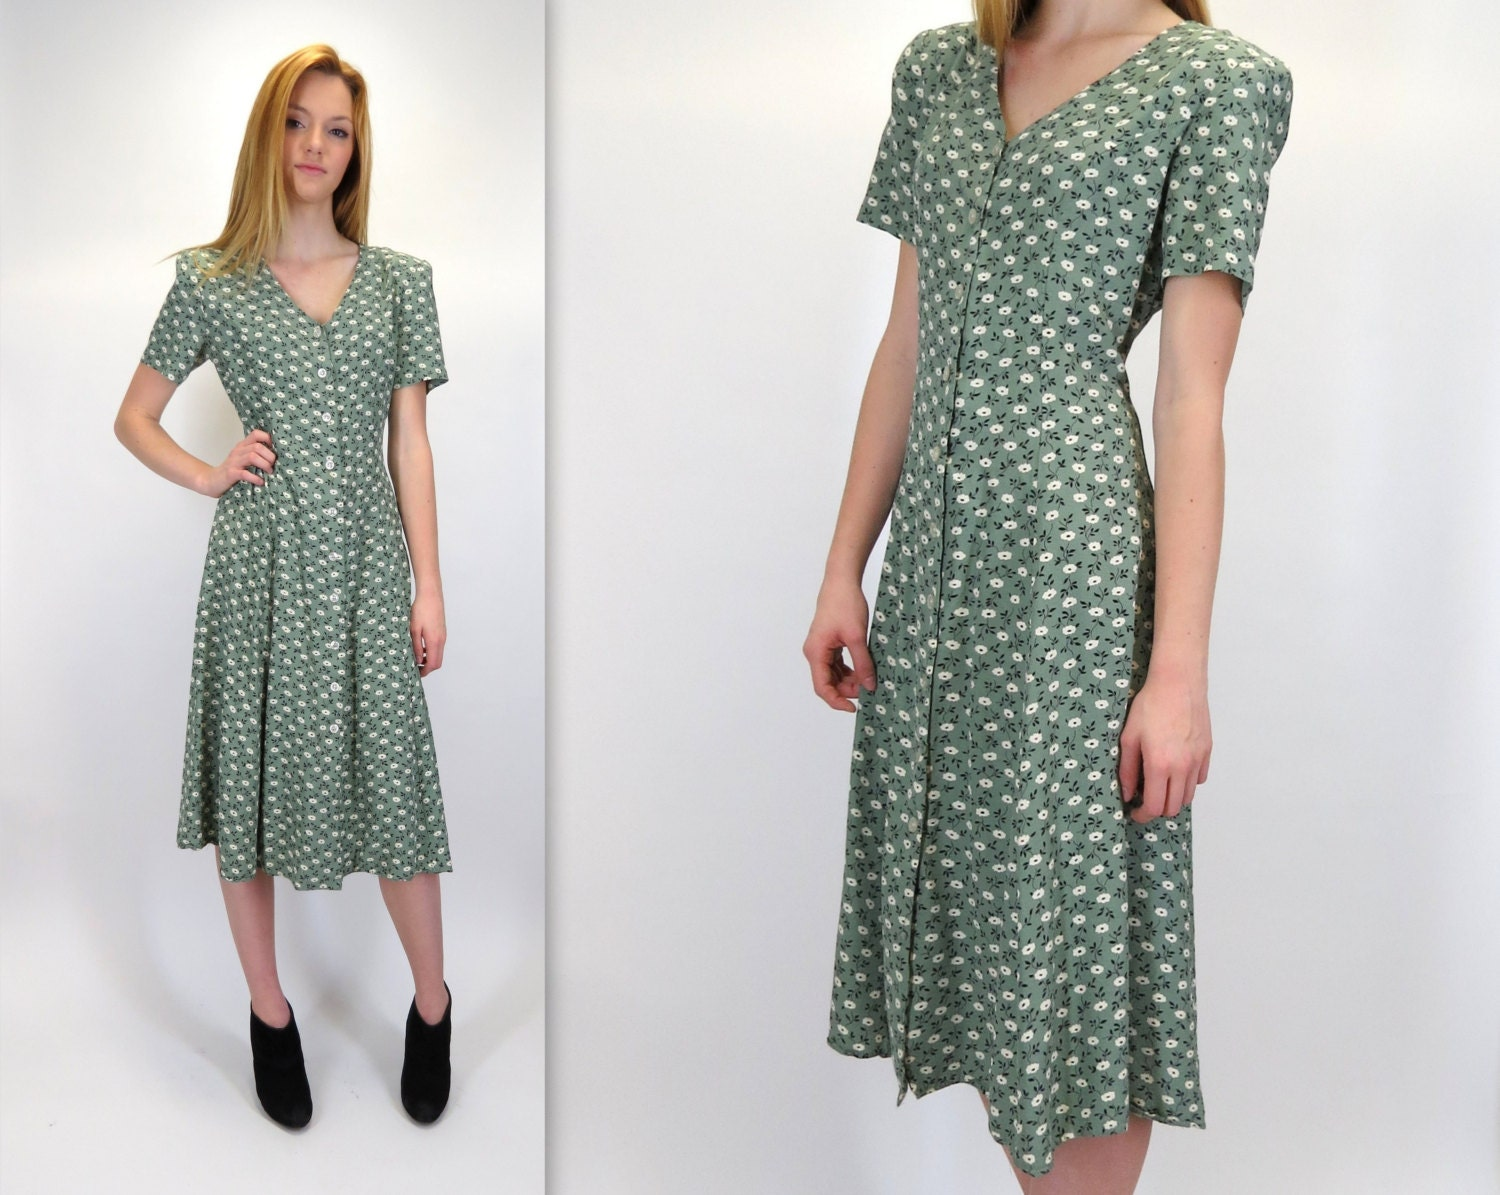 Vintage Wedding Dress 90s: Vintage 90s Button Front Green Tiny Floral Print Below Knee